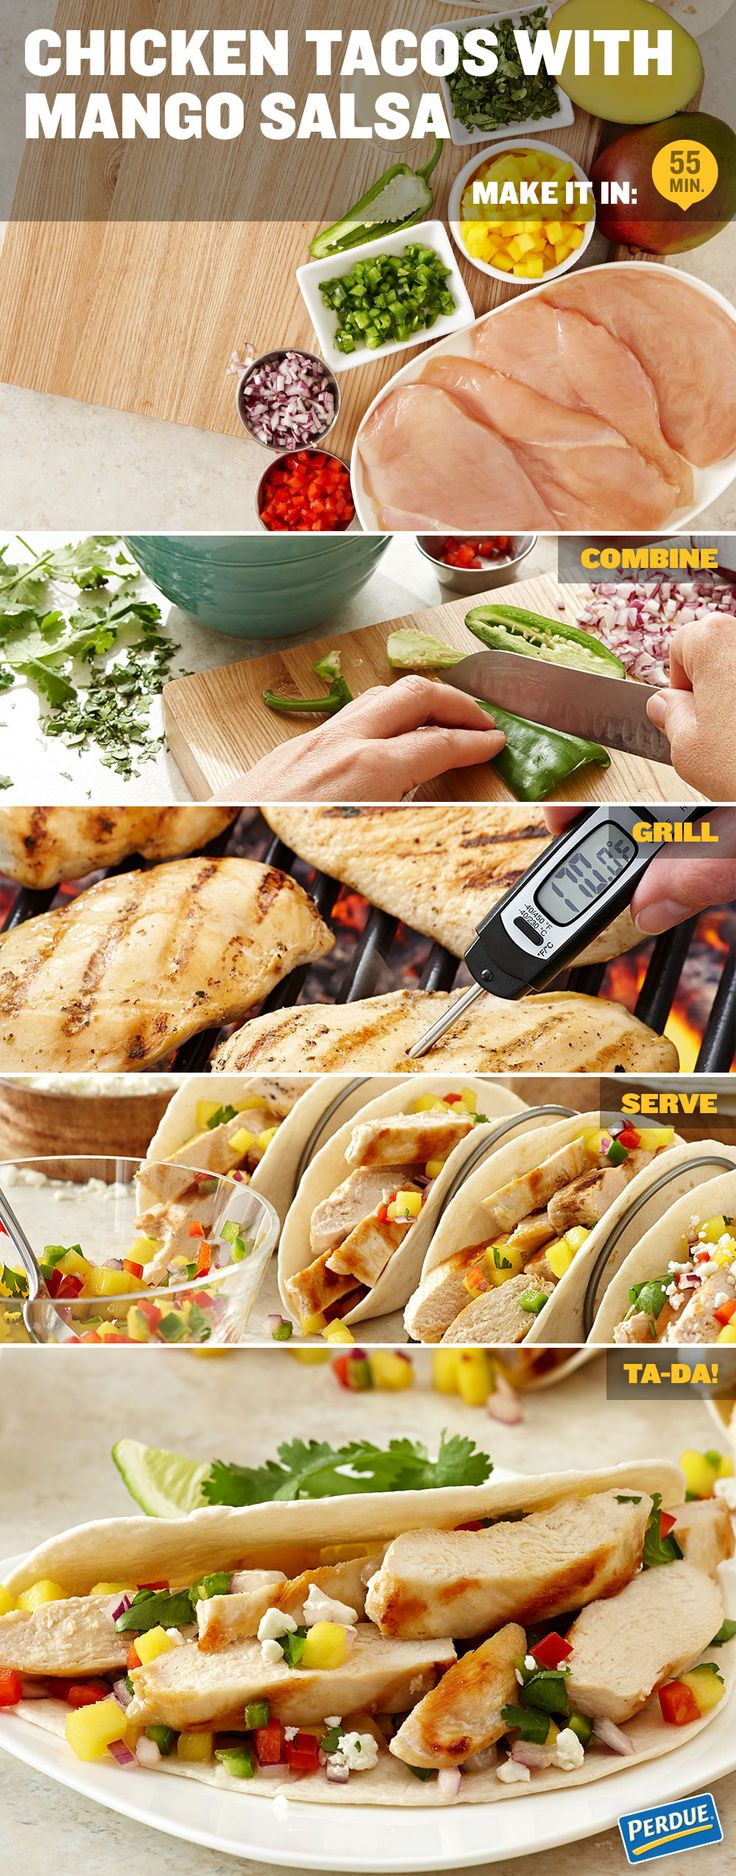 Chicken Tacos with Mango Salsa / In a small bowl, combine the mango, red onion, red bell pepper, cilantro, lime juice, jalapeno, and 1/4 teaspoon salt. Cover and chill for 20 minutes to allow flavors to develop. Heat a lightly greased grill or grill pan to medium-high heat. Brush chicken with olive oil, season with remaining salt and pepper then grill 3 to 5 minutes on each side. Chicken is done when it feels firm to the touch and a meat thermometer inserted in the center reaches 170°F.